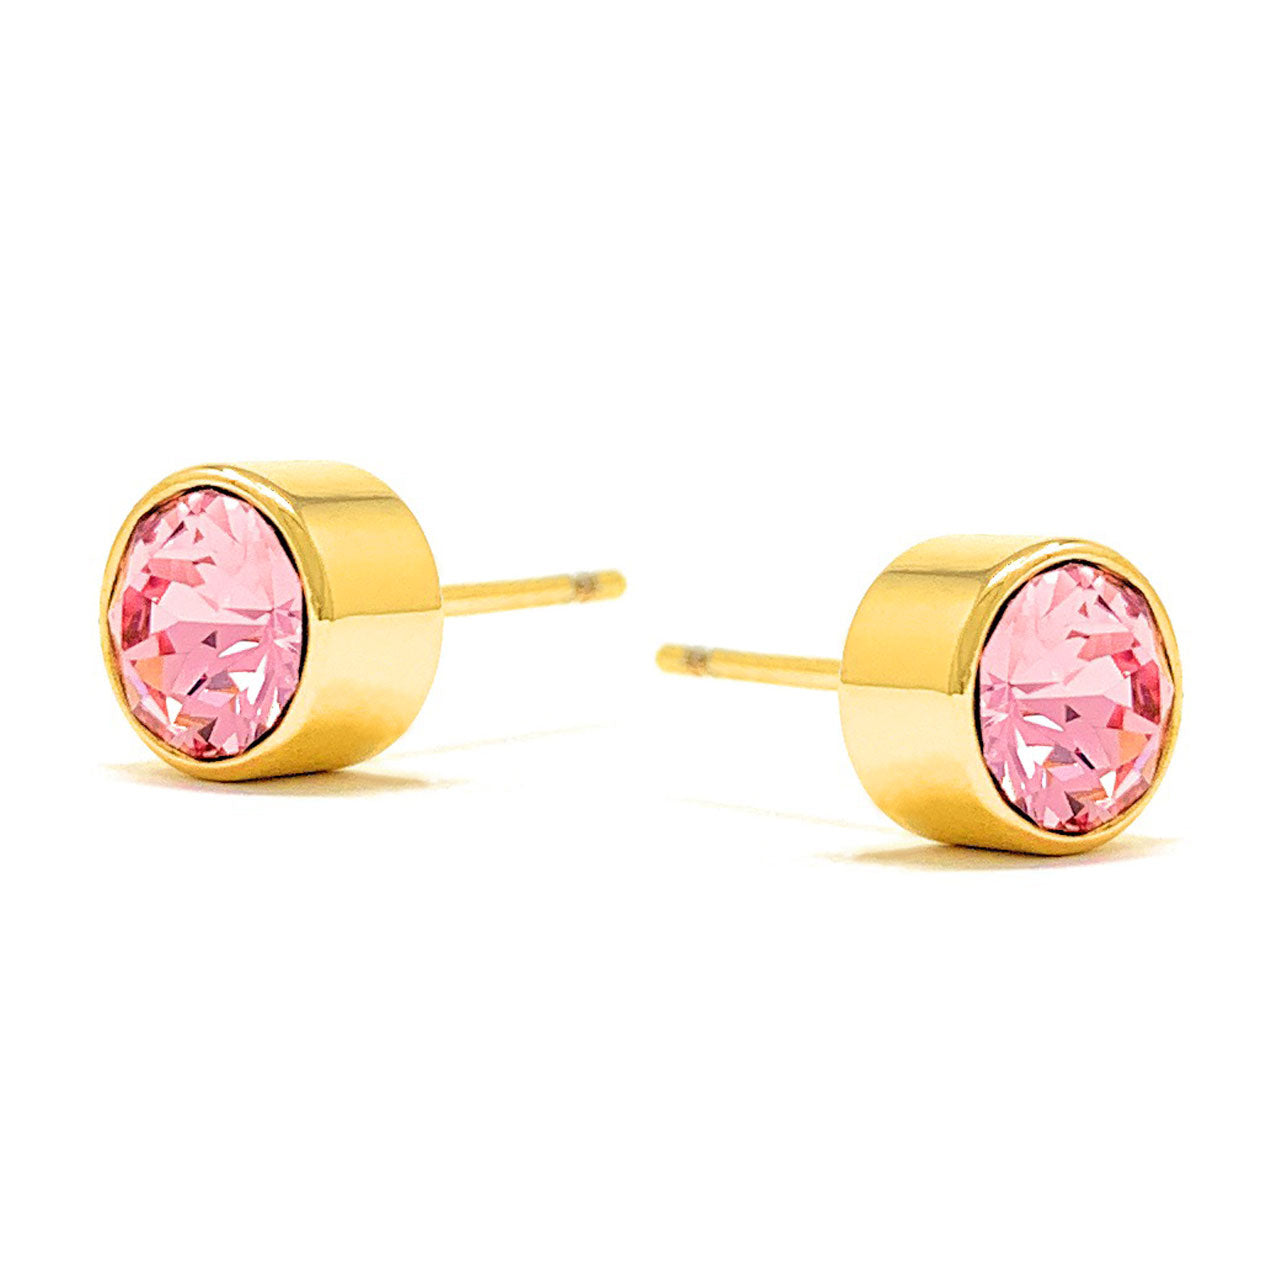 Harley Small Stud Earrings with Pink Light Rose Round Crystals from Swarovski Gold Plated - Ed Heart